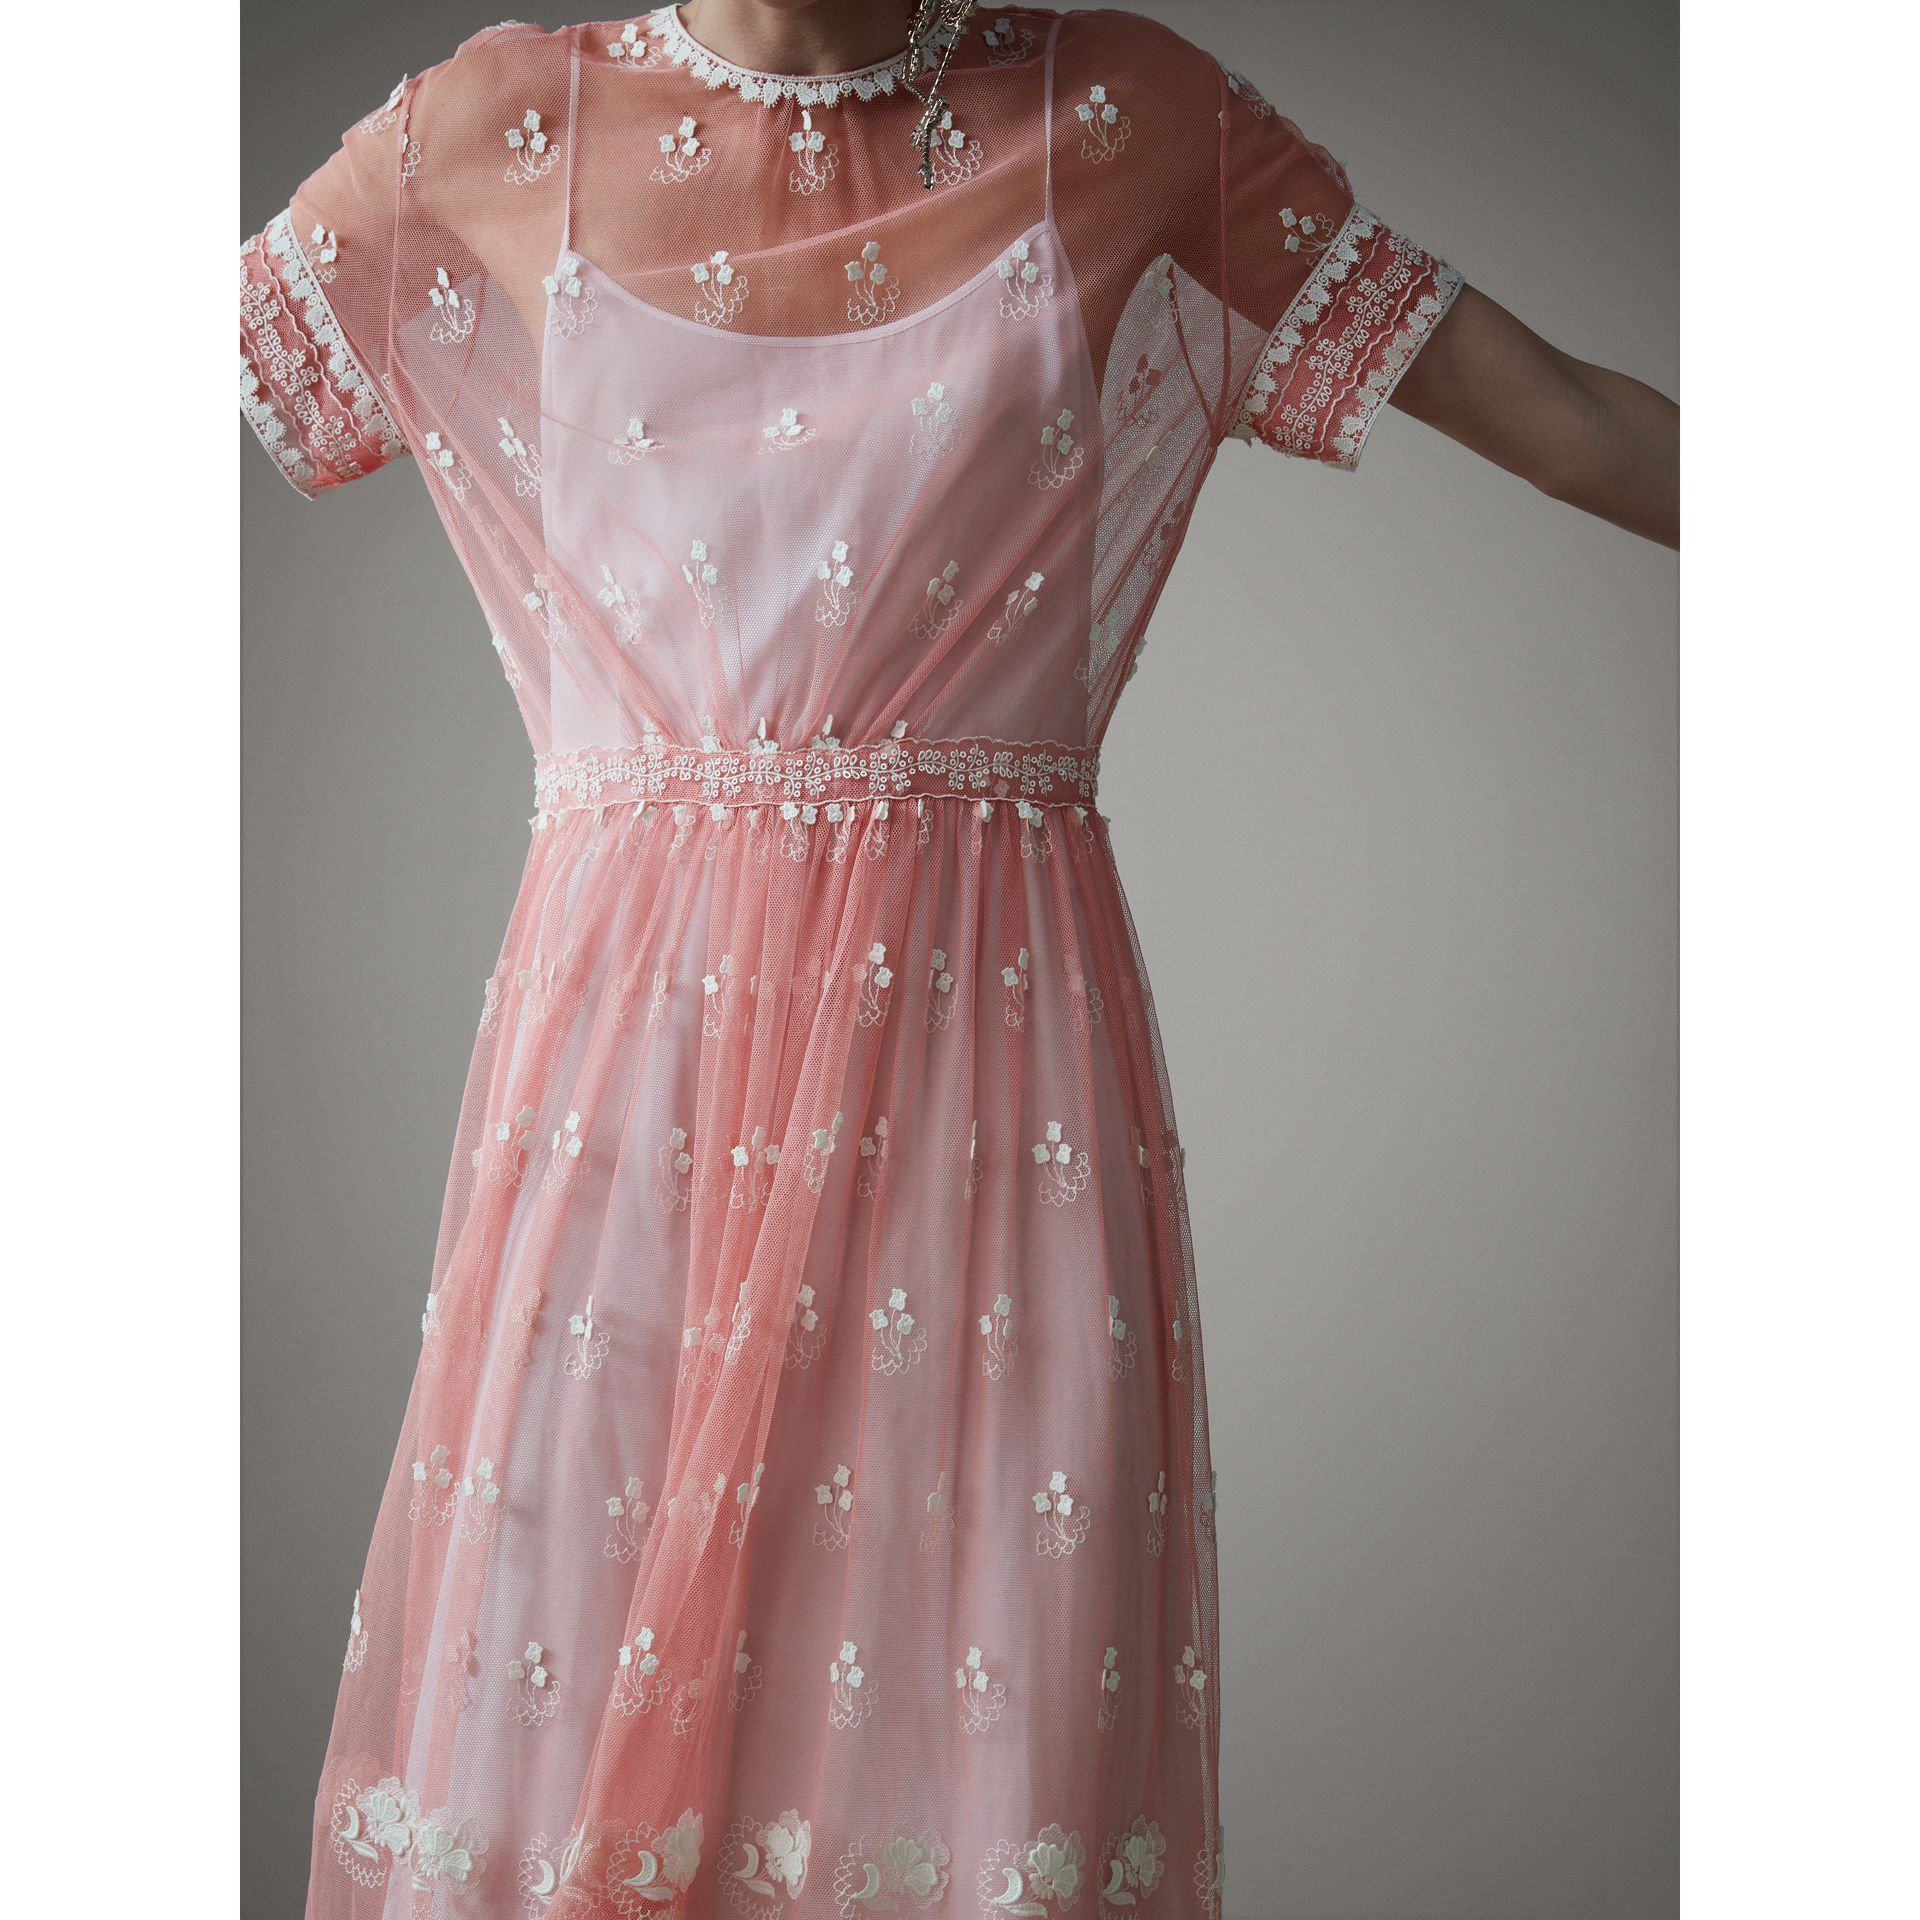 Short-sleeve Embroidered Tulle Dress in Rose Pink/white - Women | Burberry Australia - gallery image 4